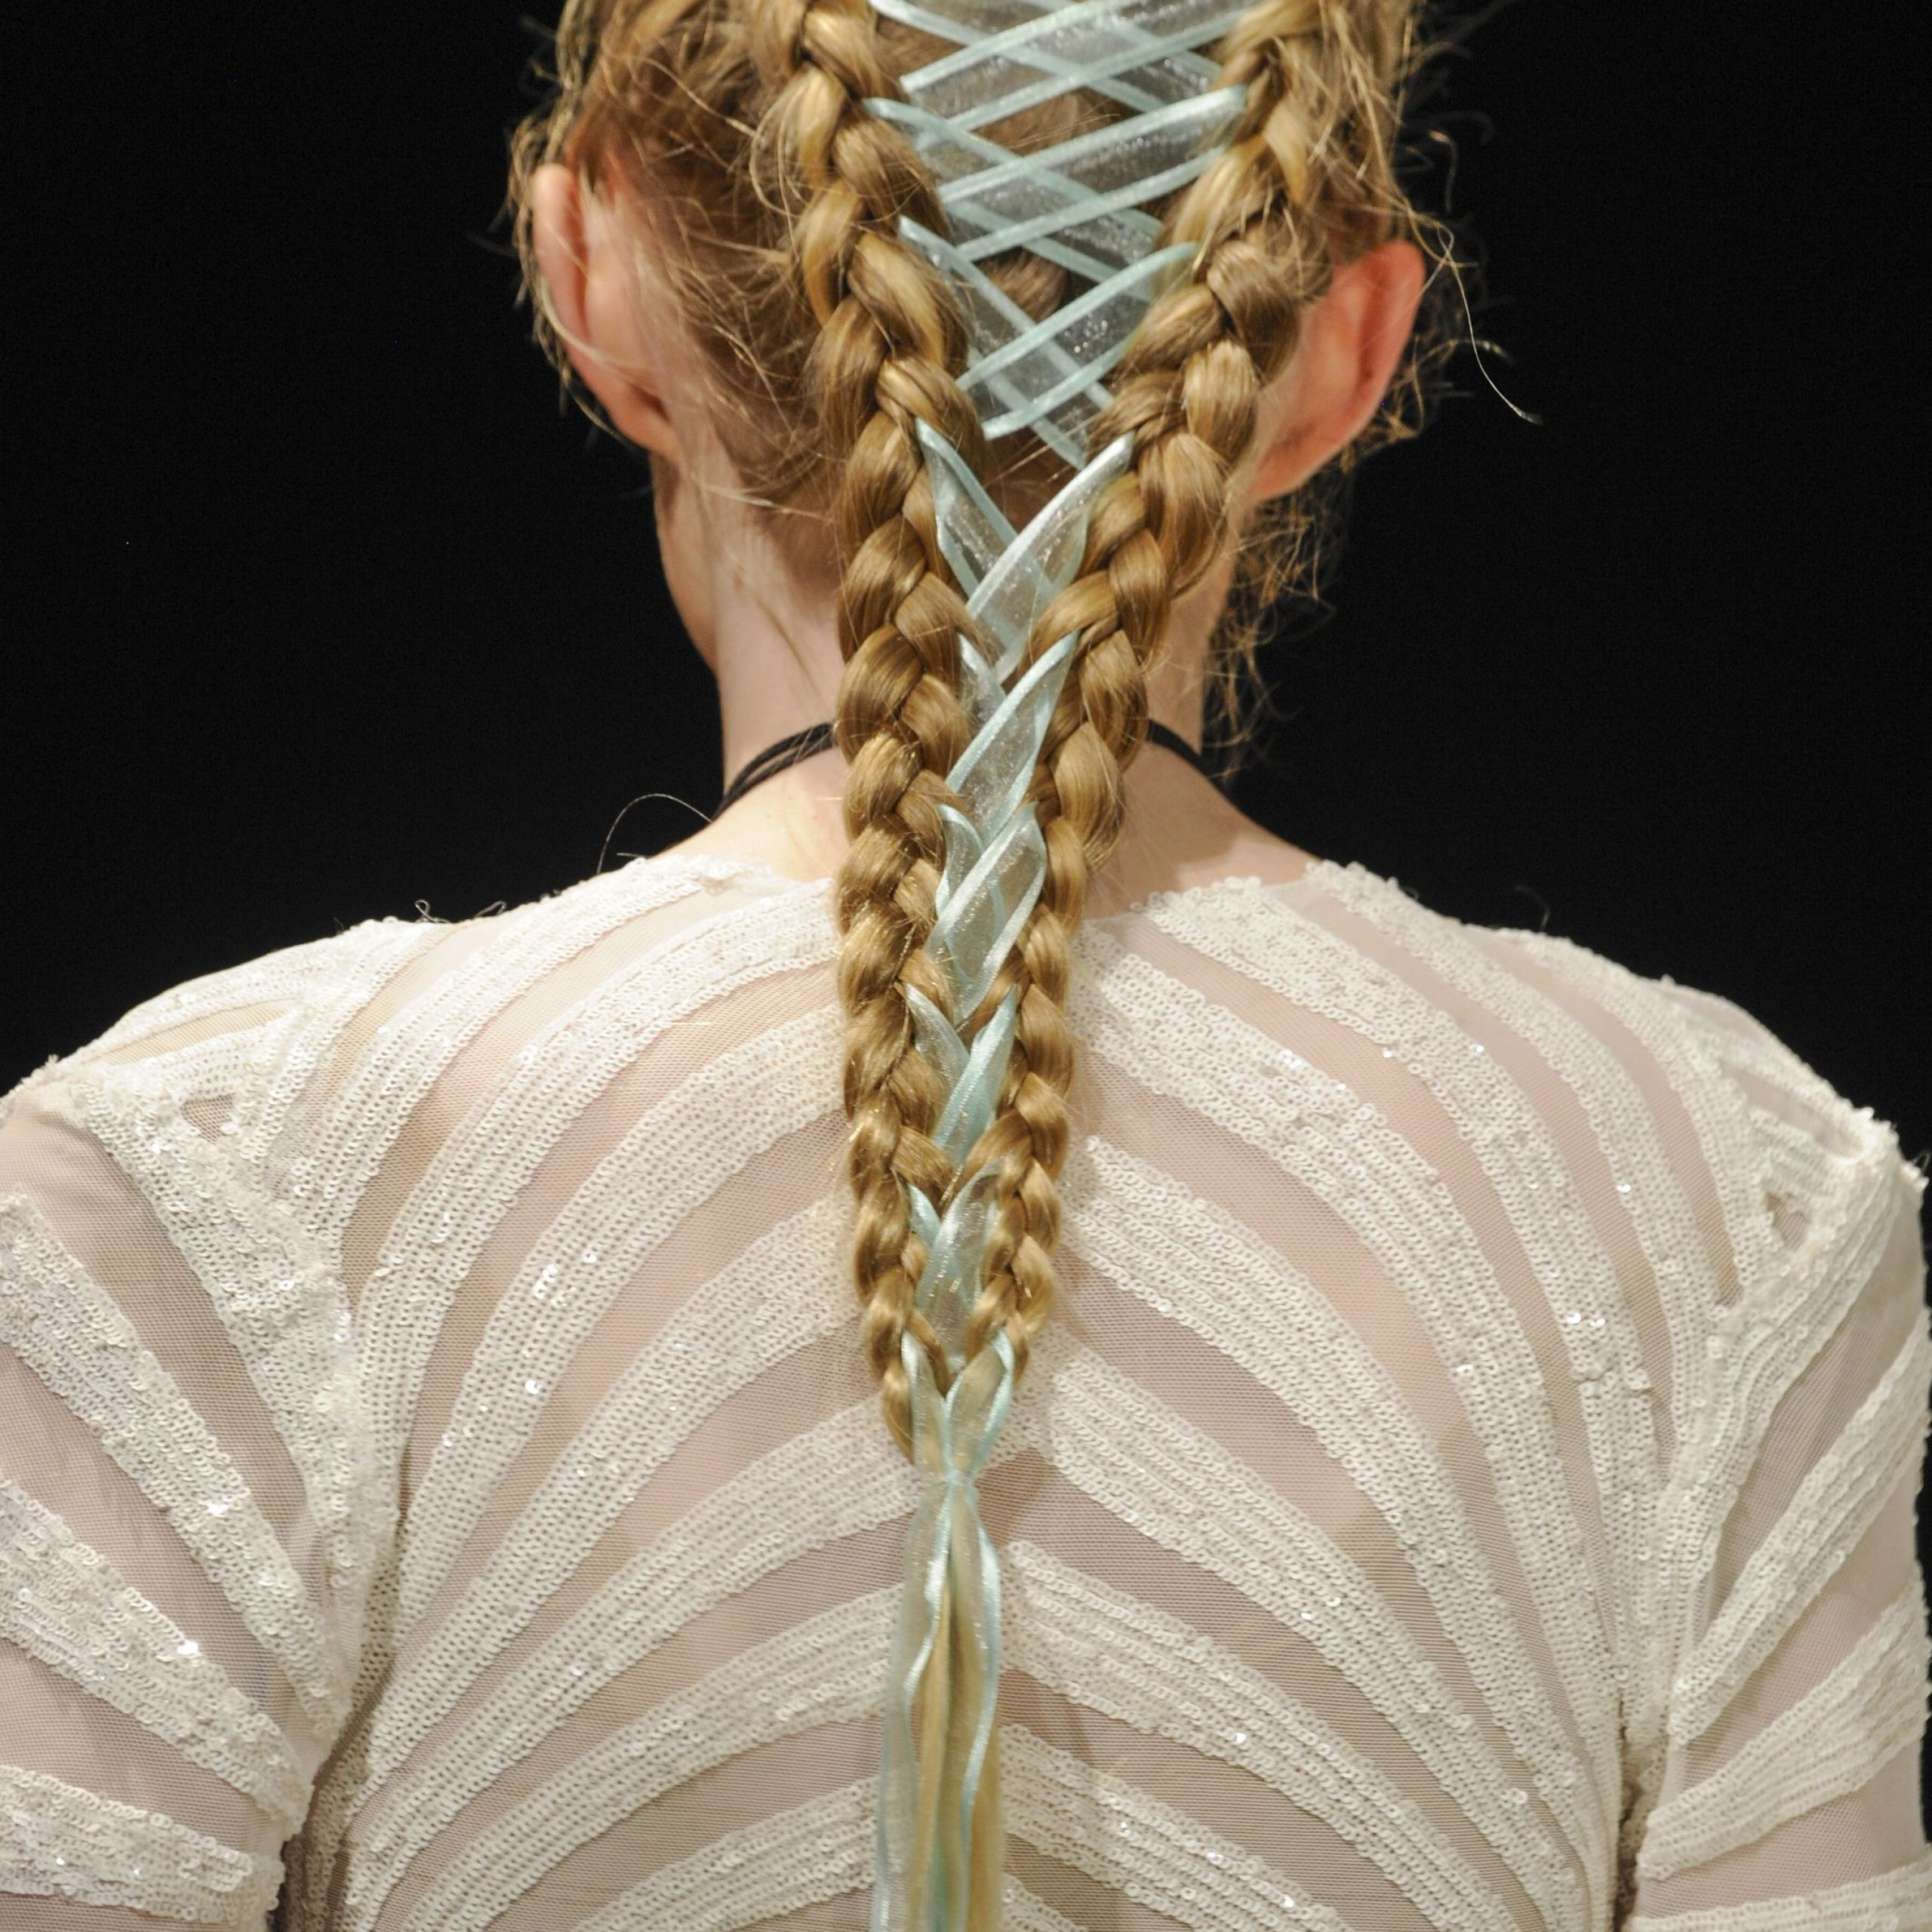 60 Easy Braided Hairstyles – Cool Braid How To's & Ideas Pertaining To Widely Used Loosely Tied Braid Hairstyles With A Ribbon (Gallery 11 of 20)